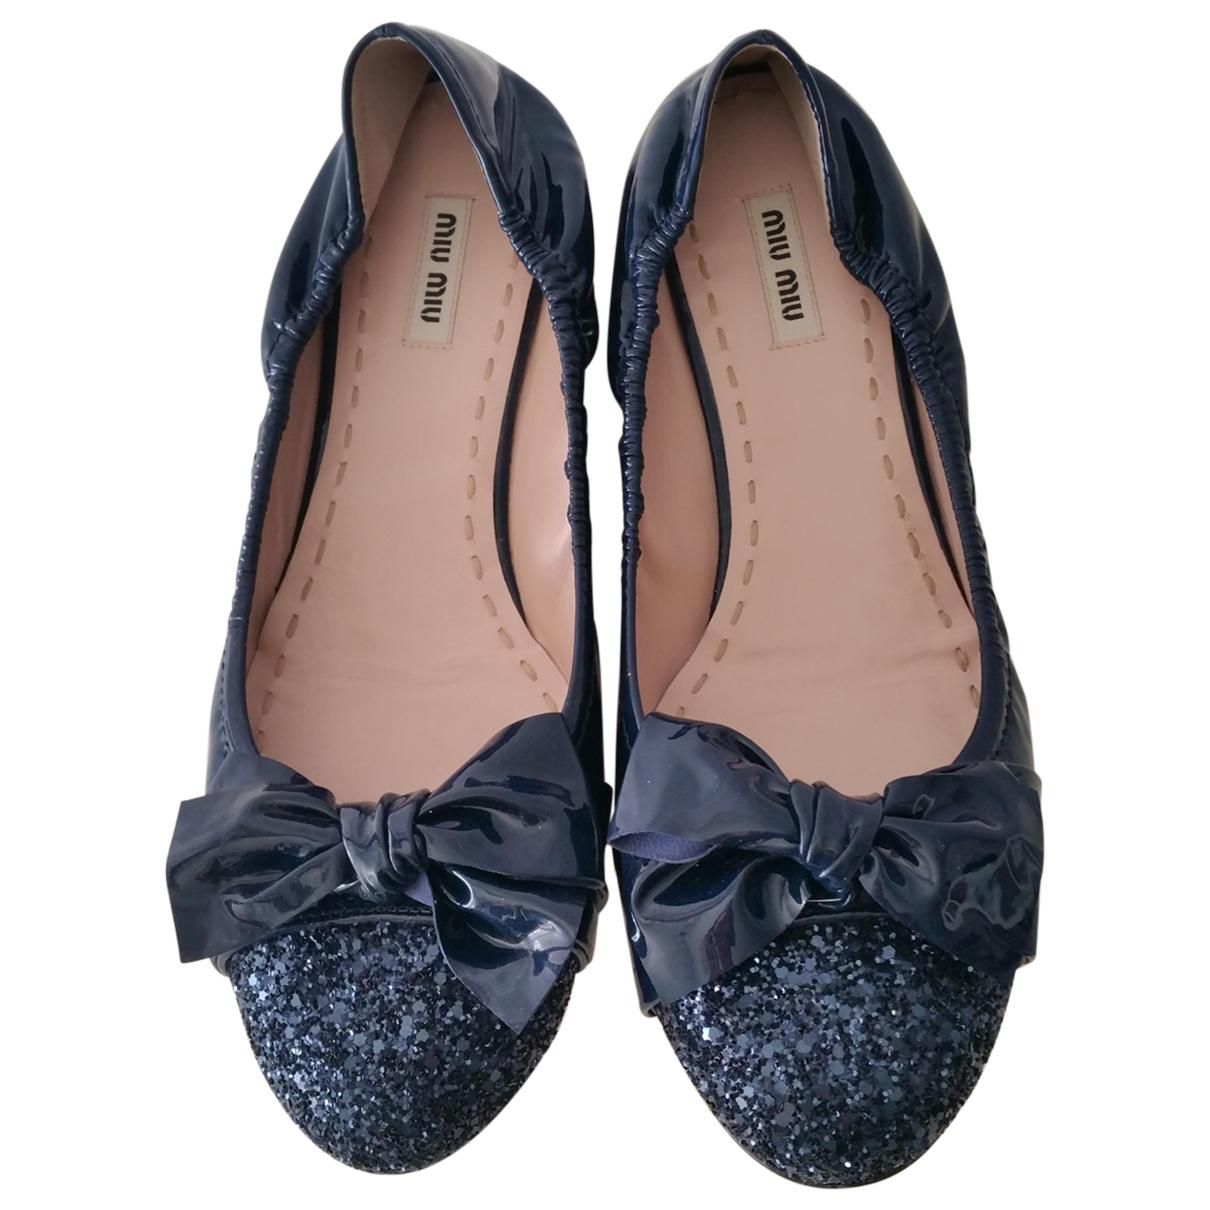 Pre-owned - LEATHER VARNISH BALLET FLATS Miu Miu mME0314